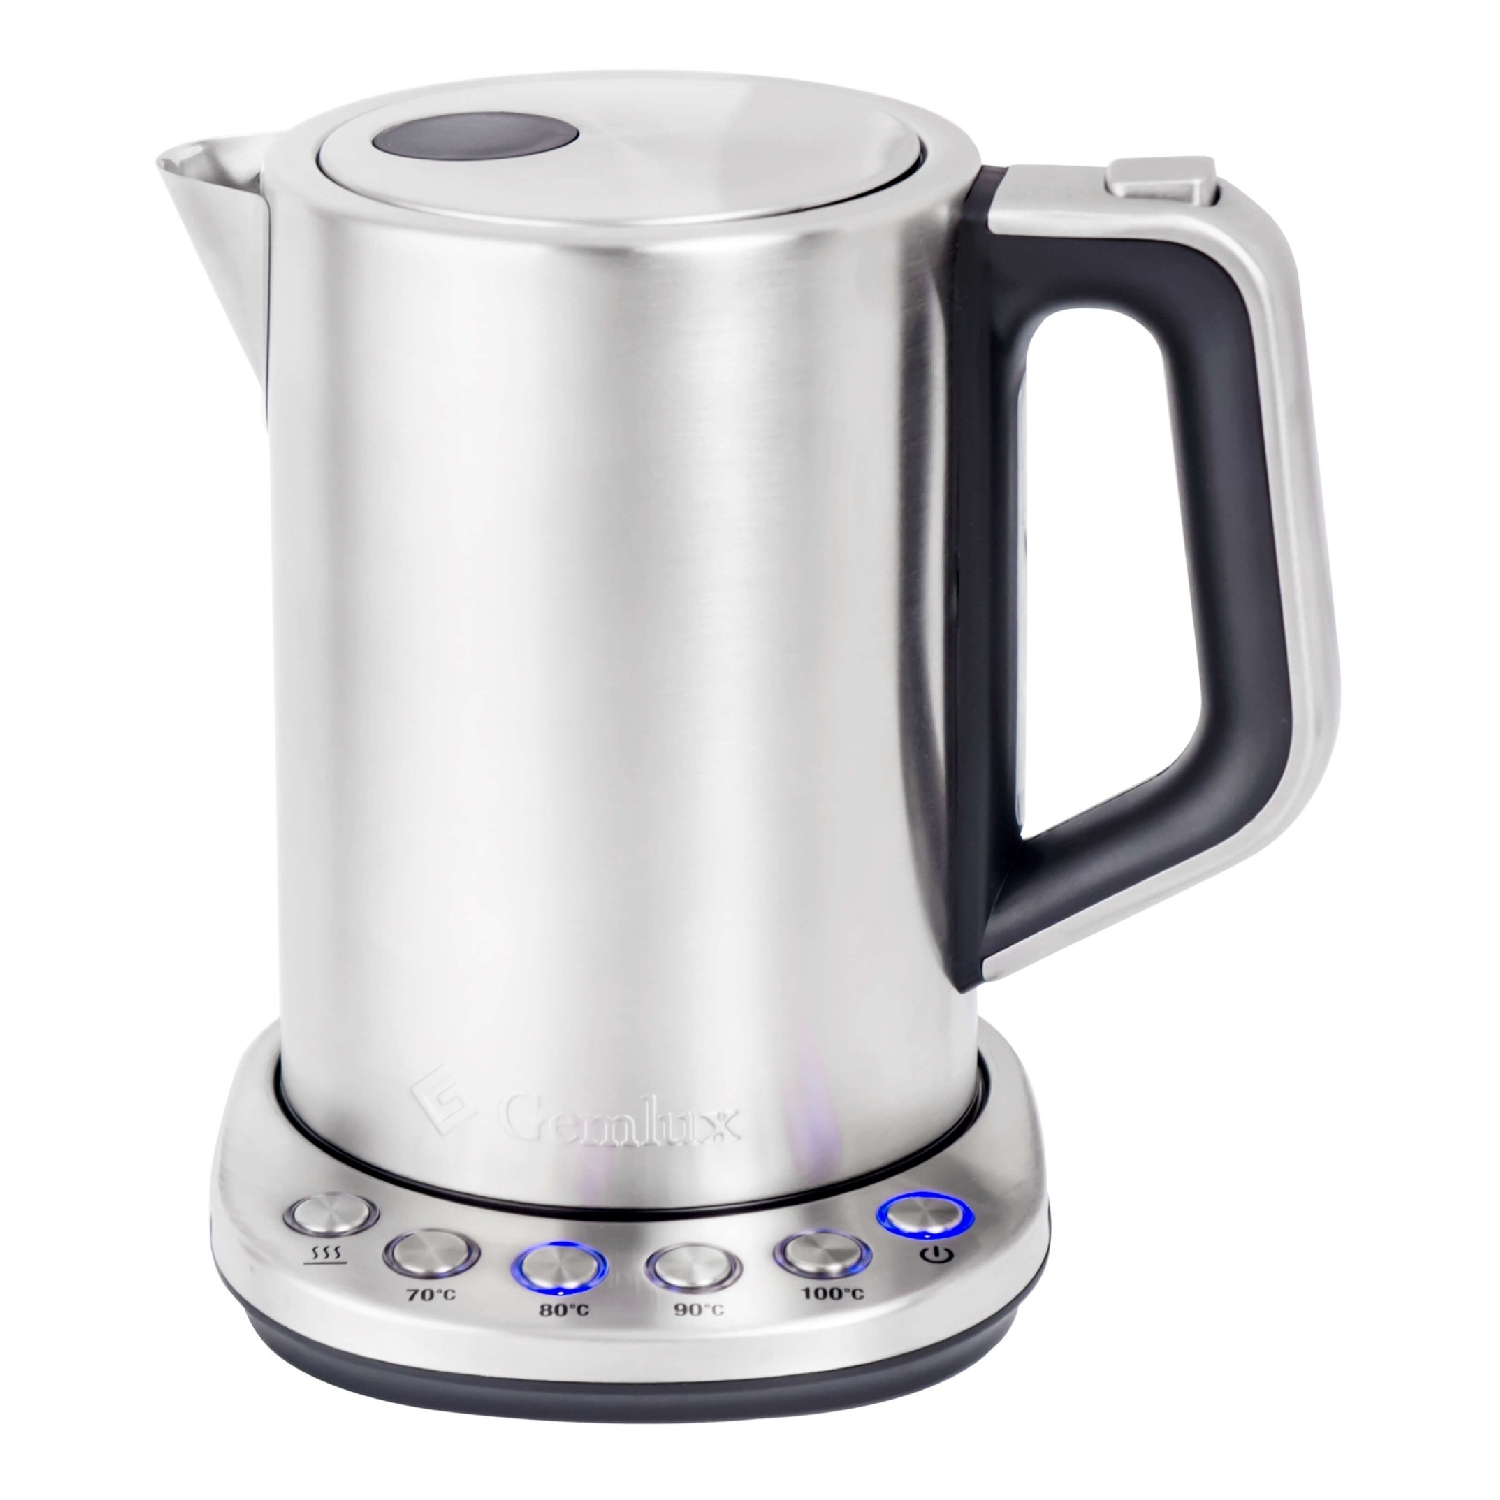 Kettle electric GEMLUX GL-EK622SS цена и фото